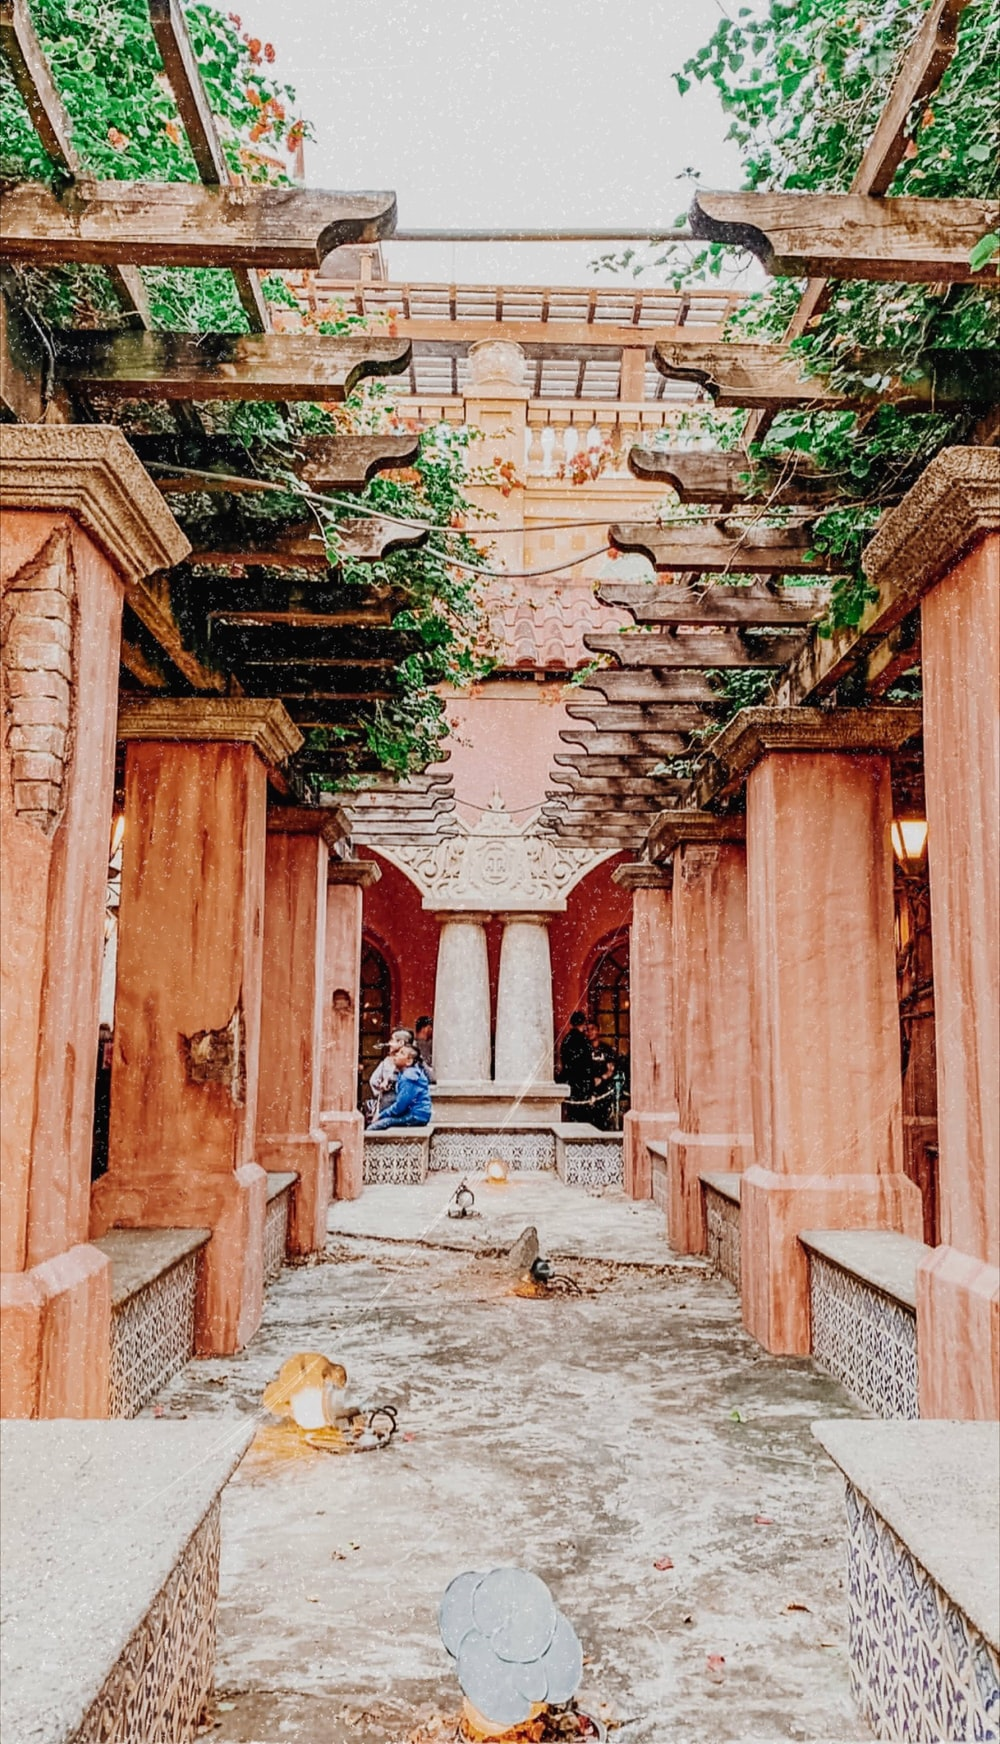 brown wooden pillars with plants